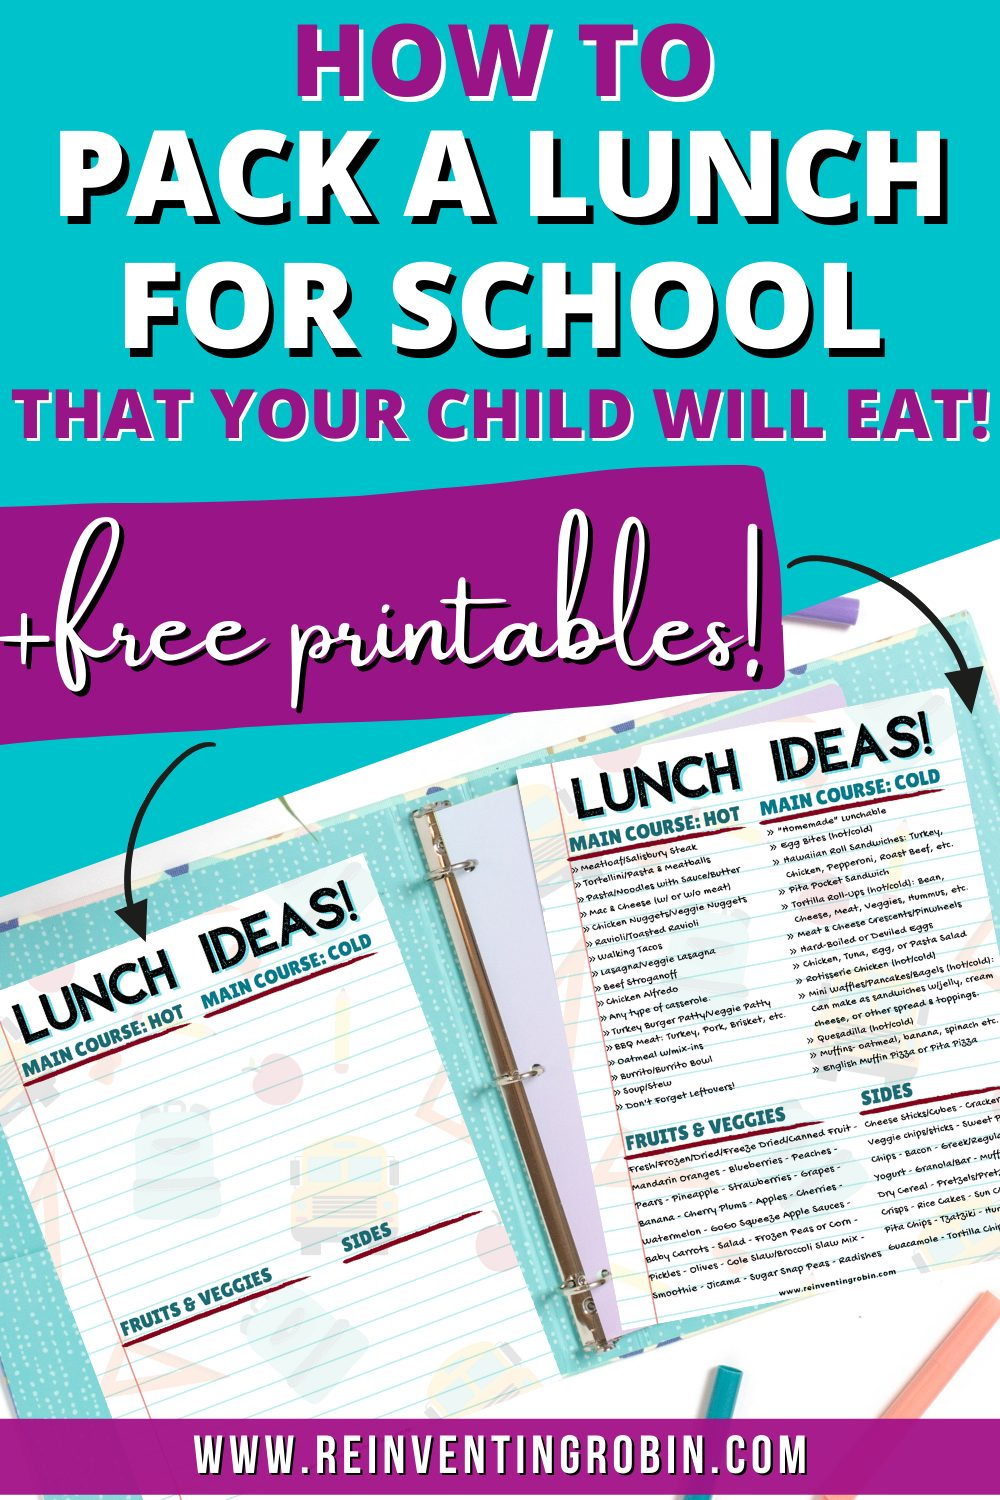 States: How to Pack A Lunch for School That Your Child Will Eat + Free Printables! www.reinventingrobin.com